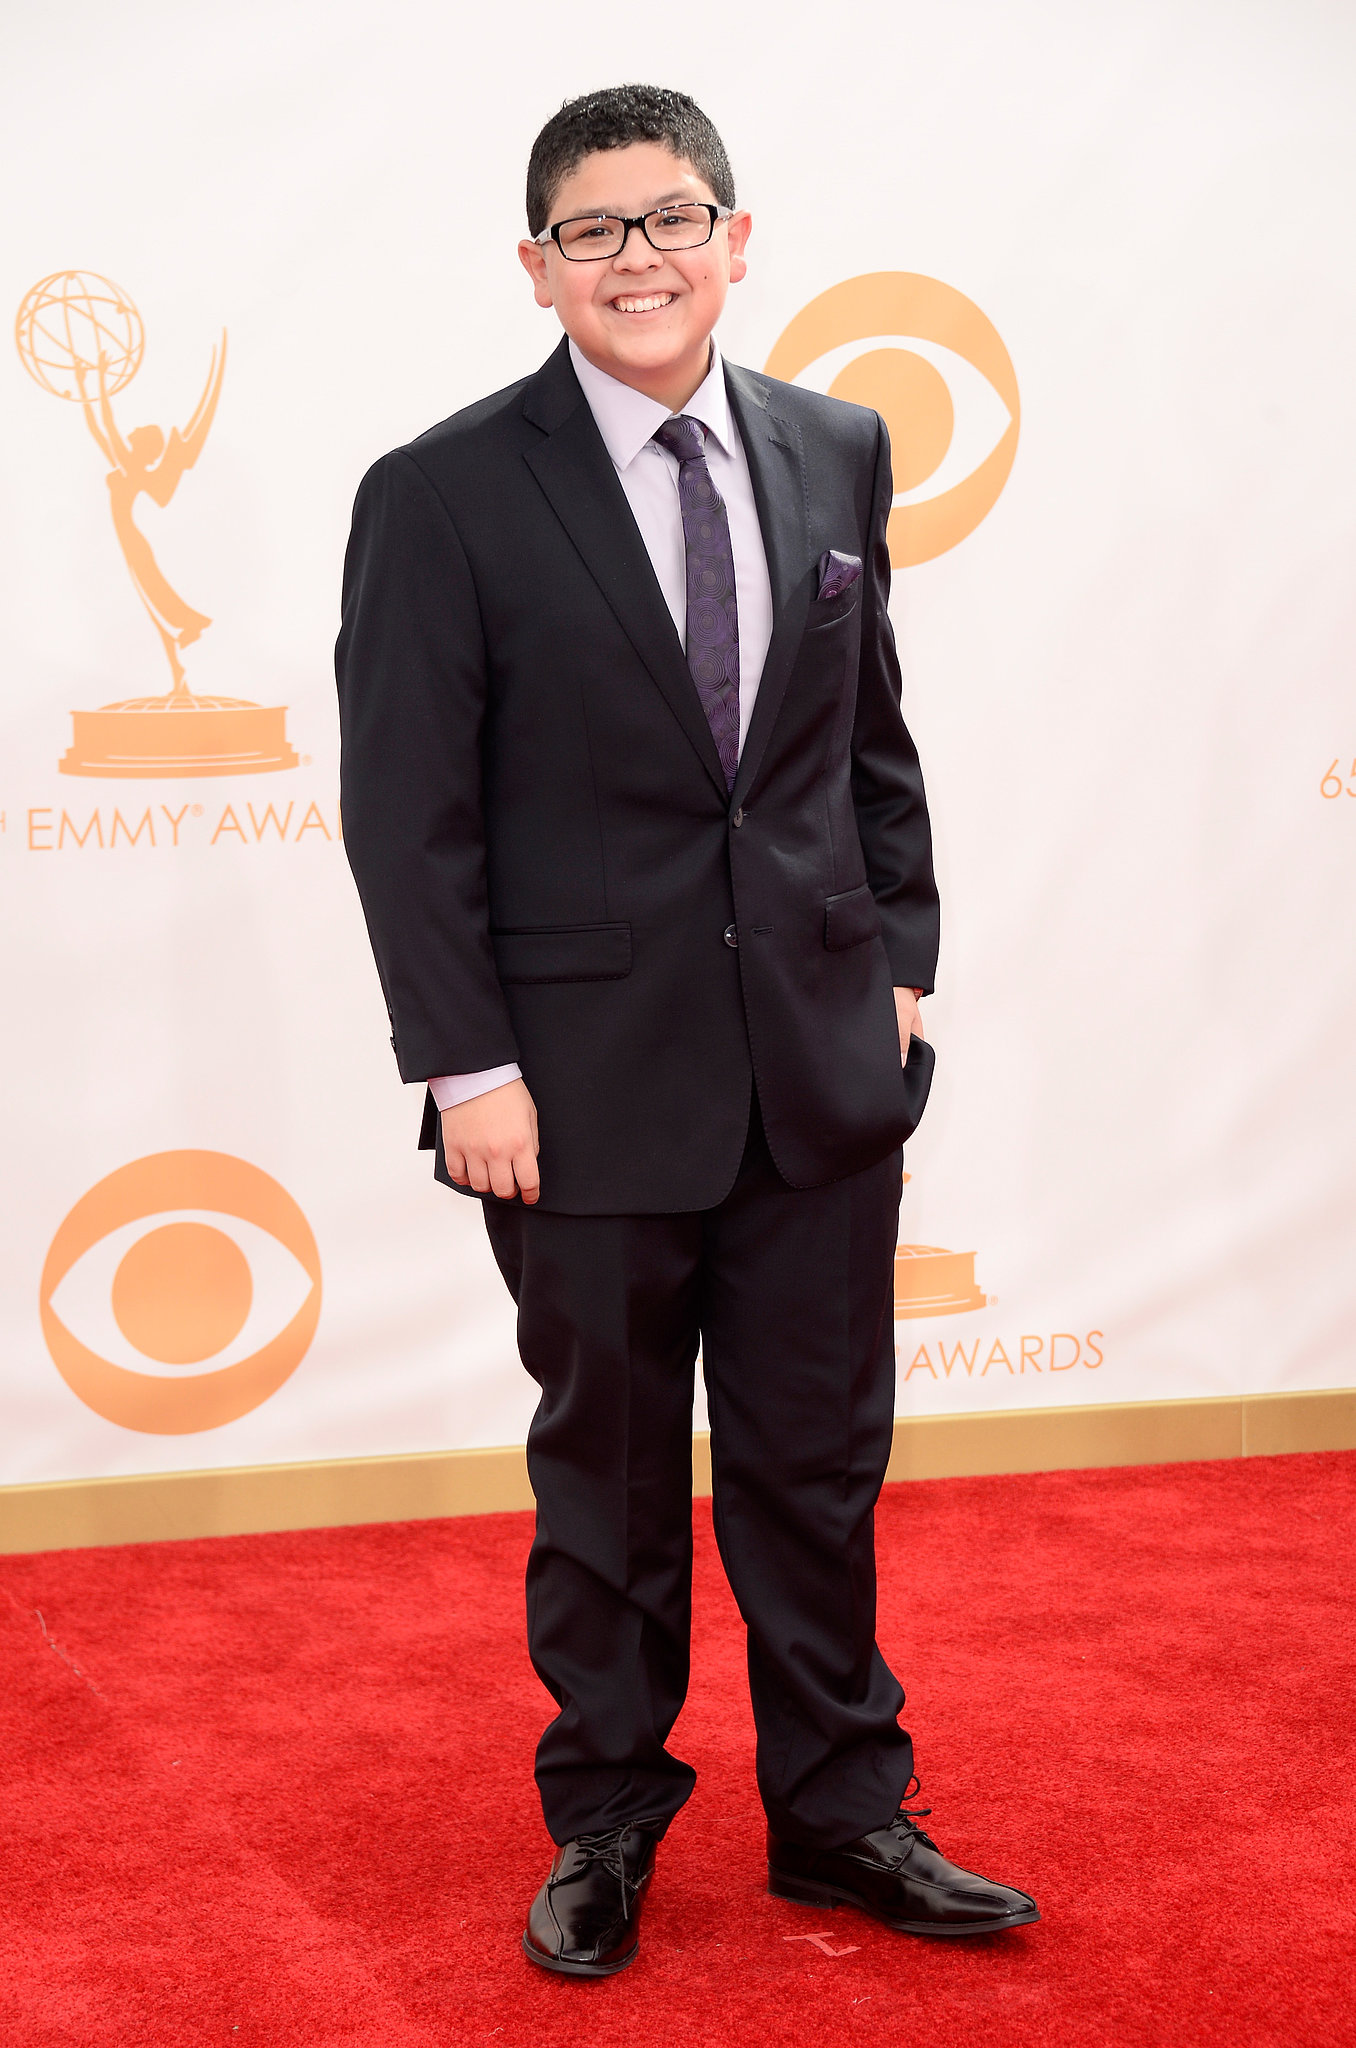 Rico Rodriguez from Modern Family attended the Emmys.